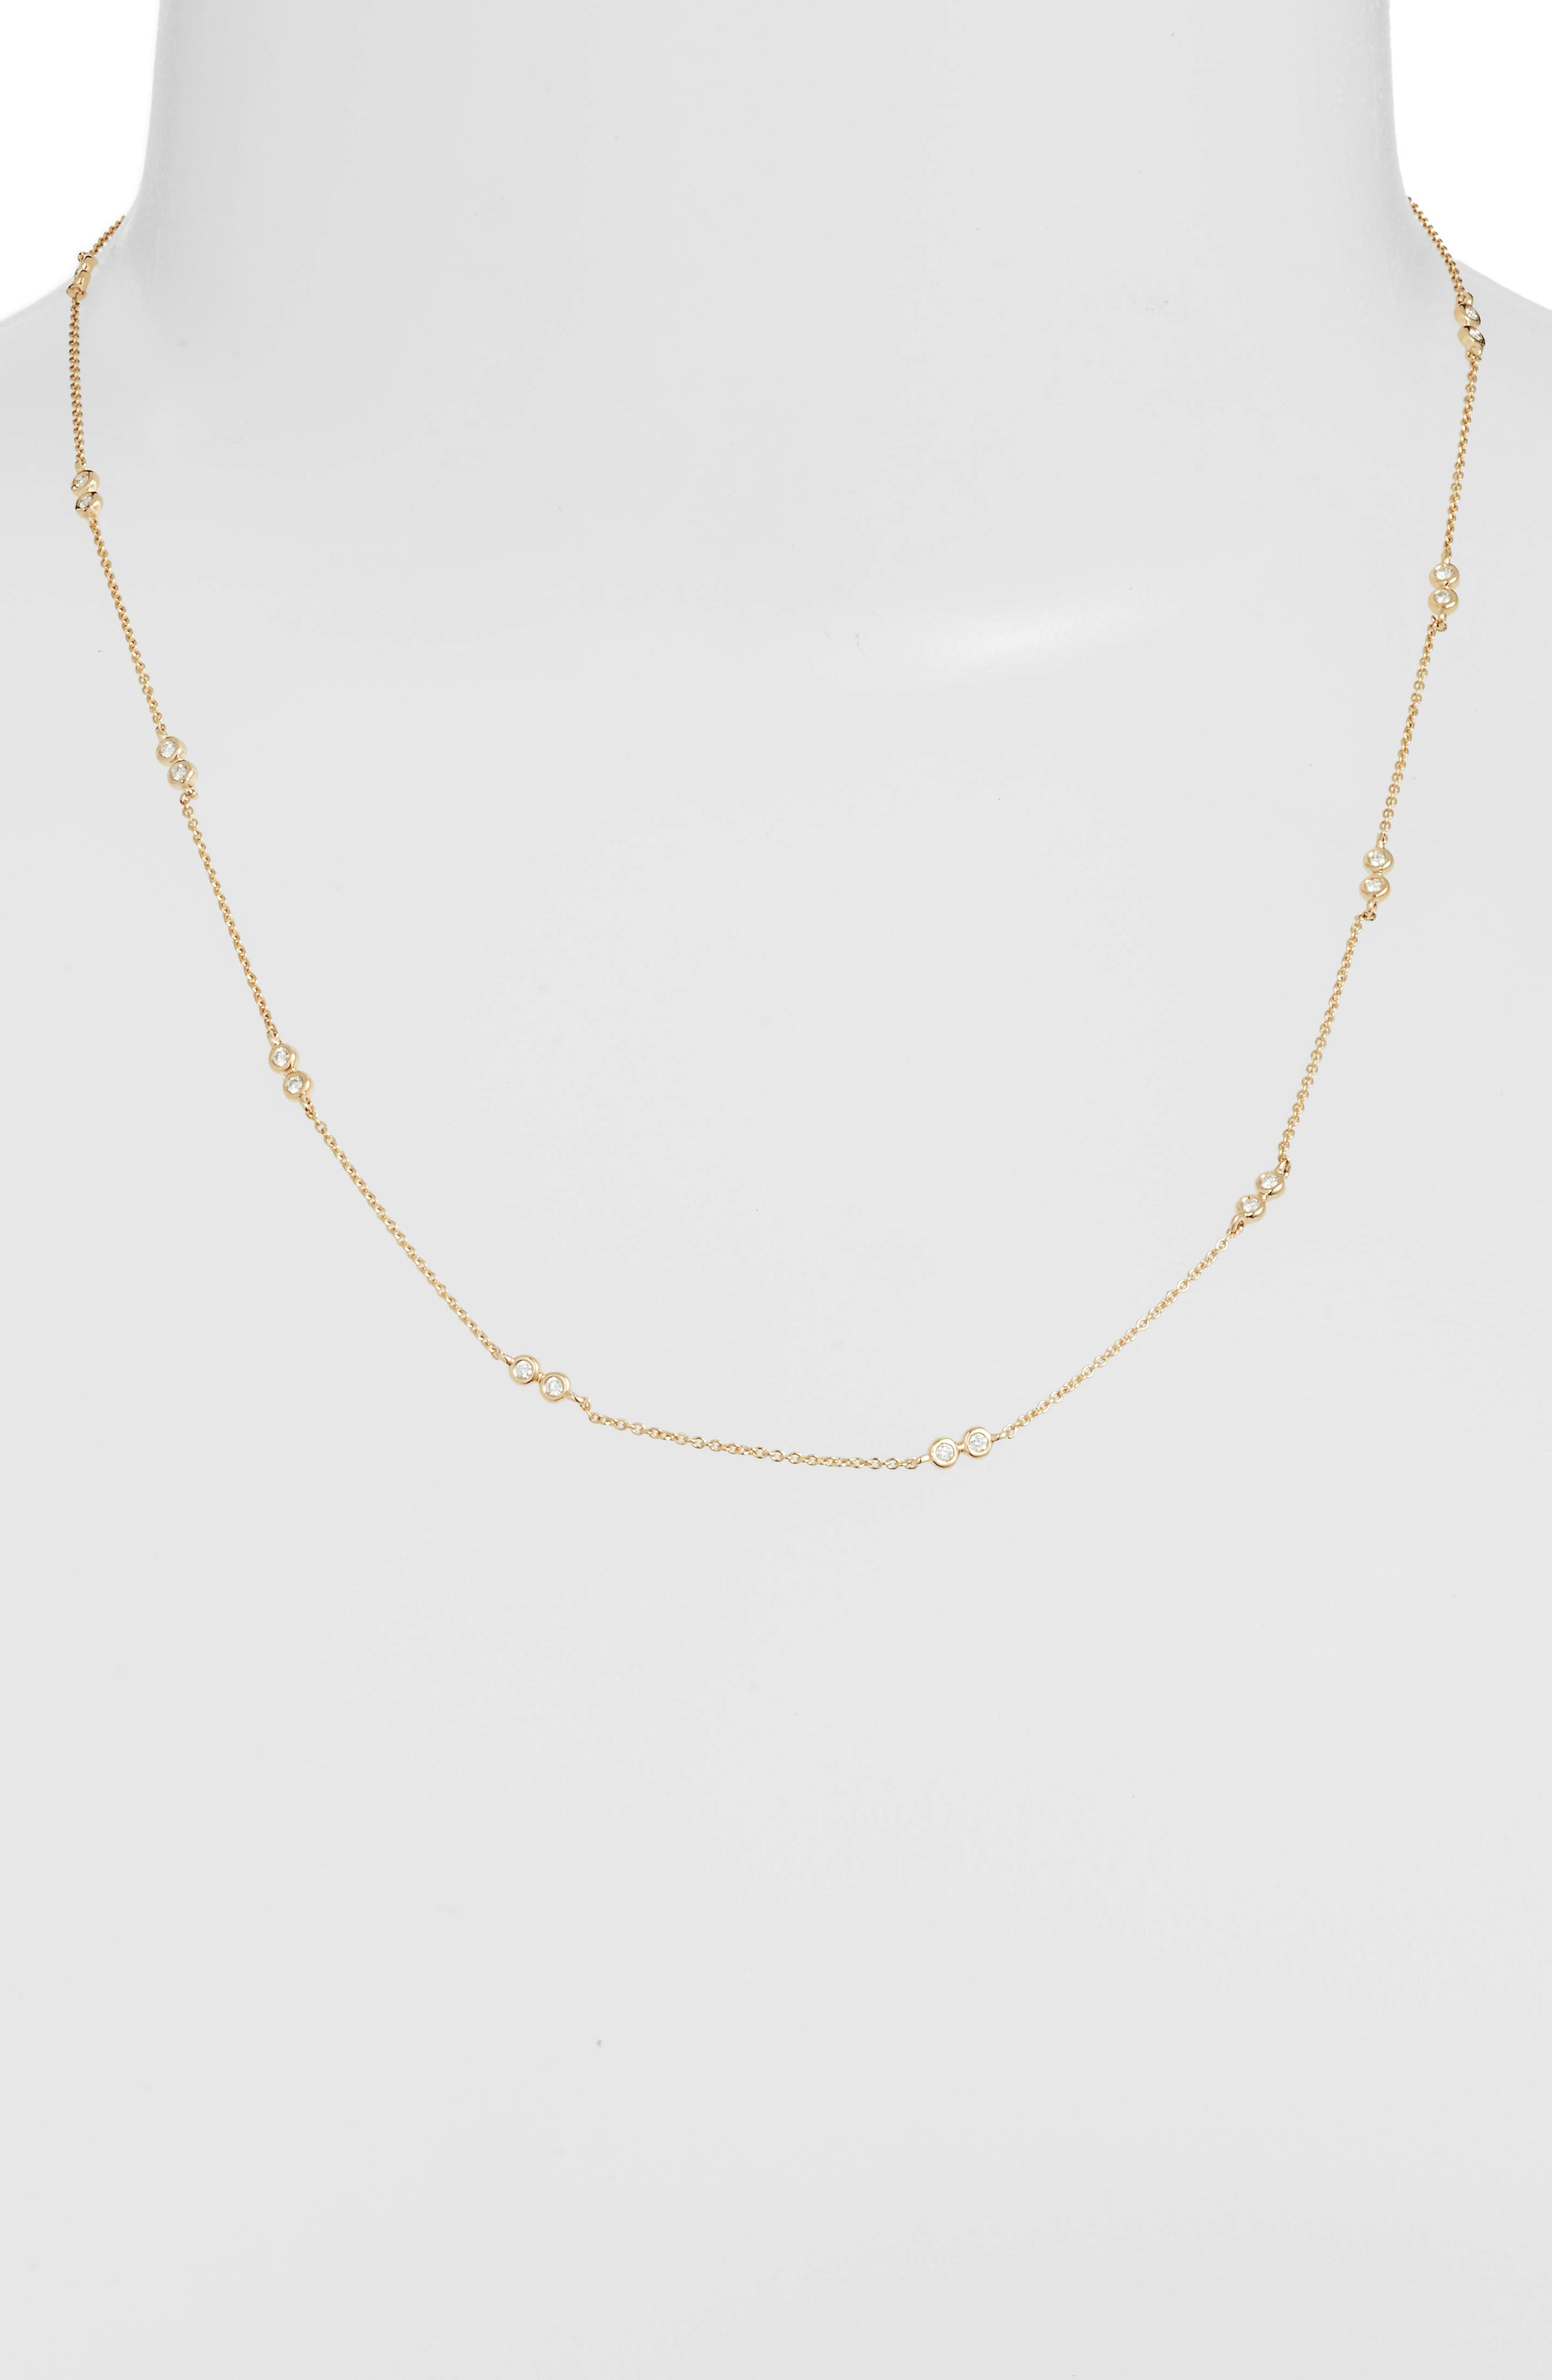 Lulu Jack Diamond Station Necklace,                             Alternate thumbnail 2, color,                             YELLOW GOLD